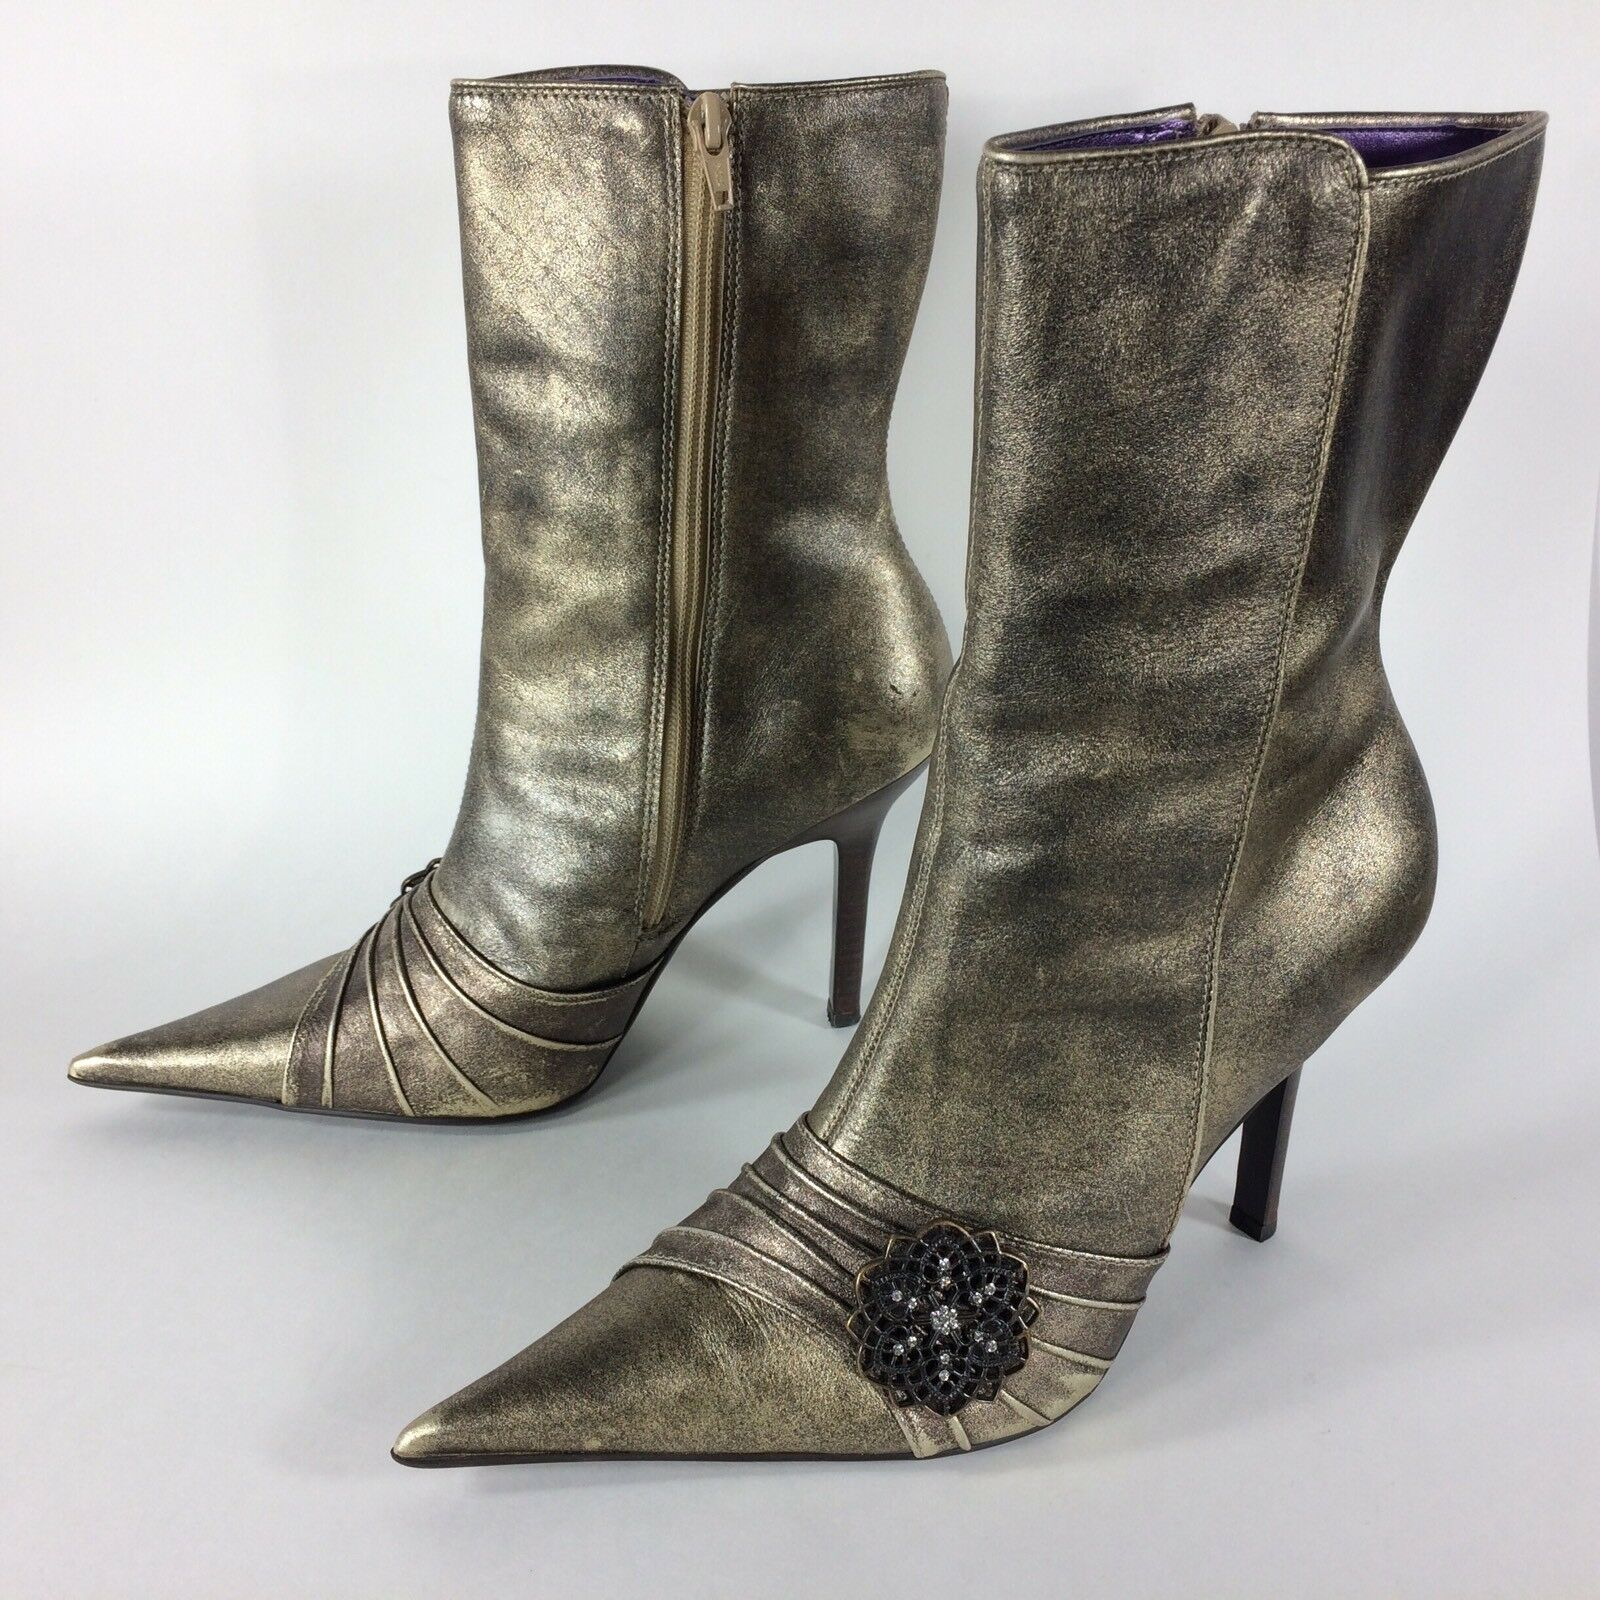 STEVE MADDEN High Heel Boots Leather Gold Metallic Womens Size 8.5 US Vtg Look